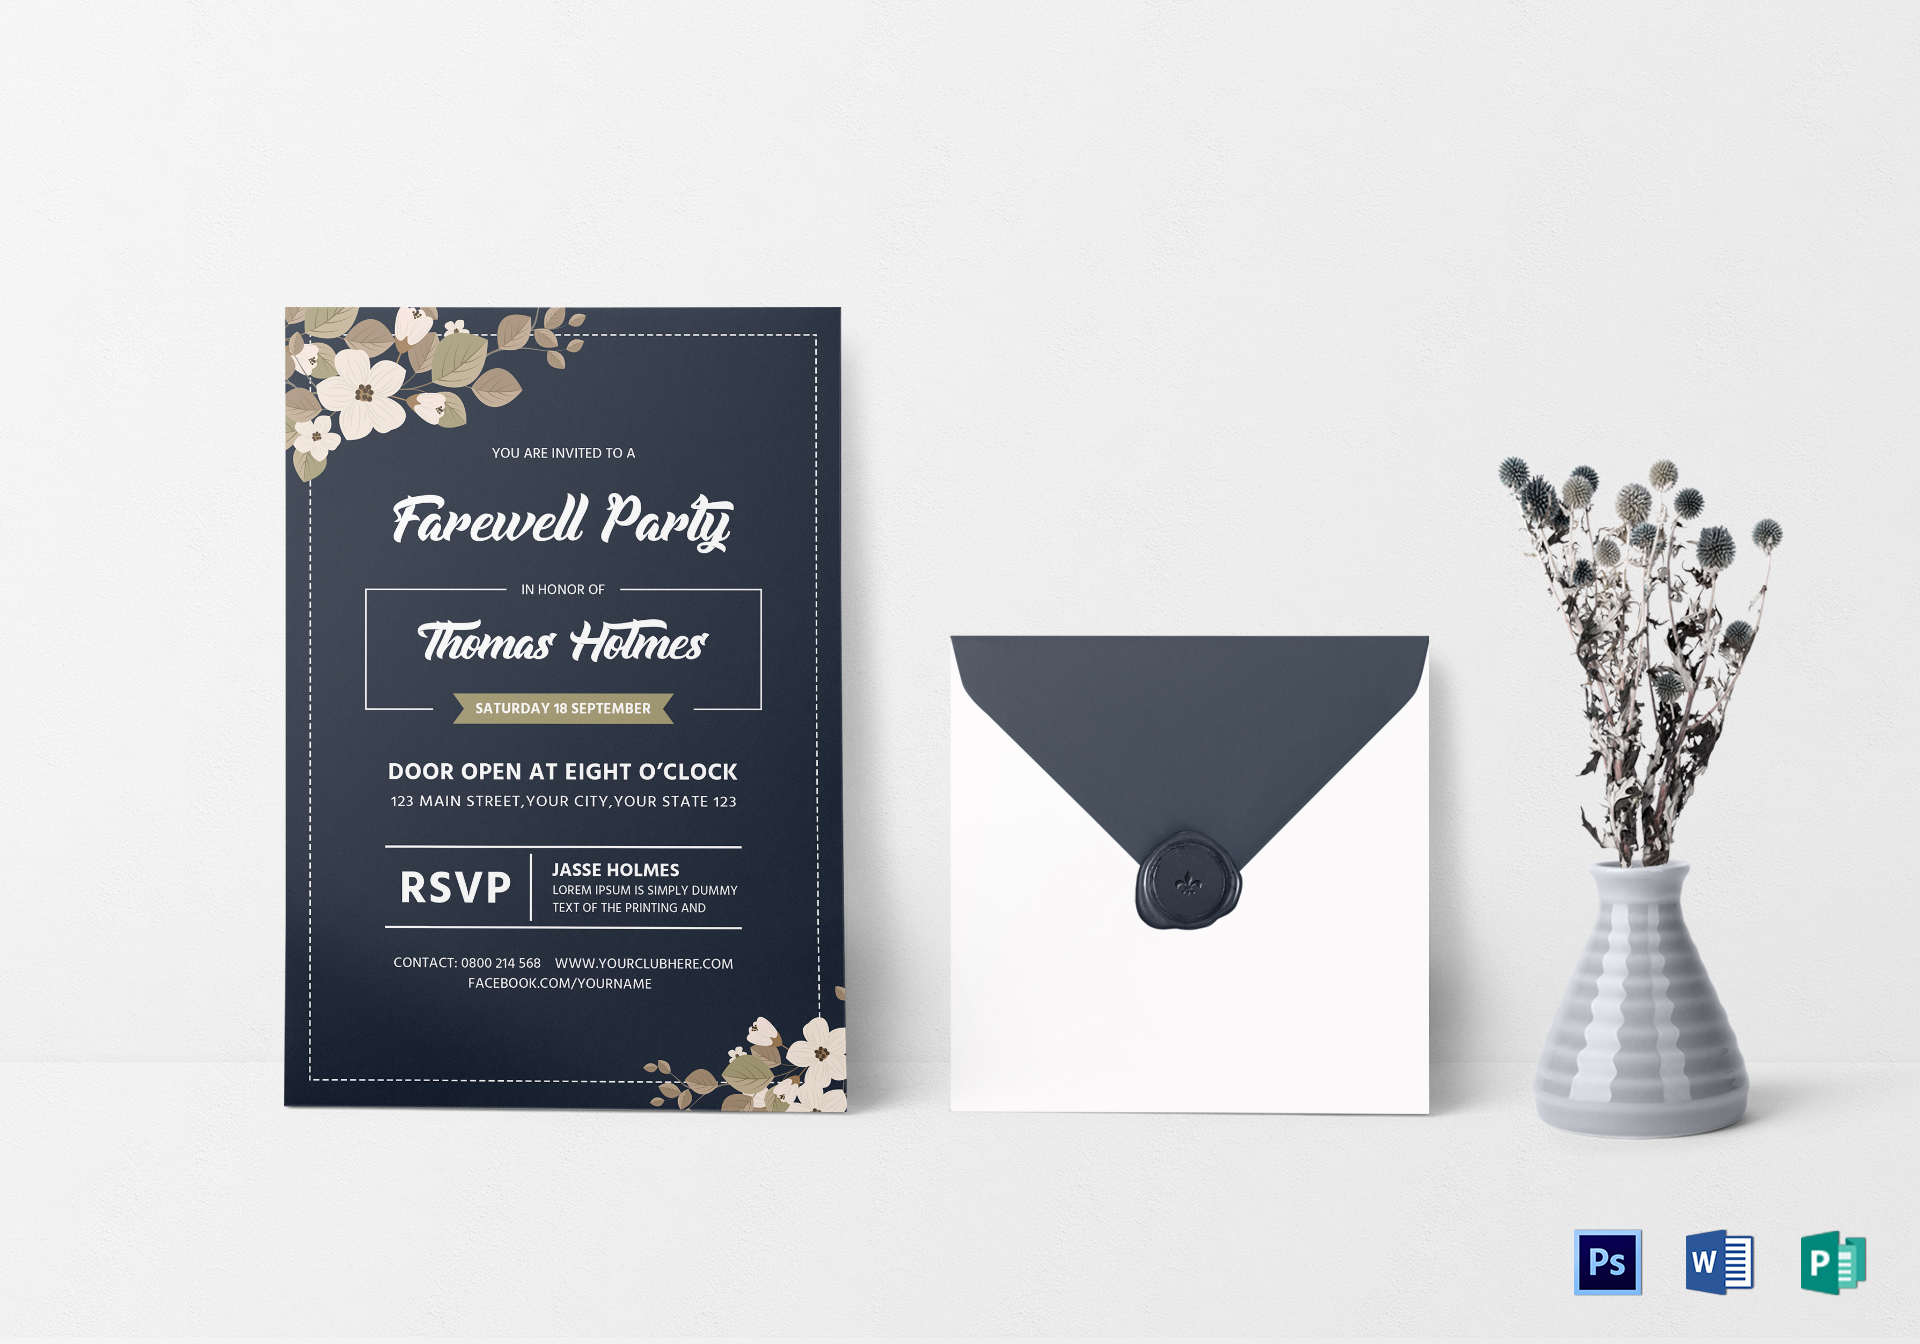 Farewell Party Invitation Card Design Template In Word Psd Publisher